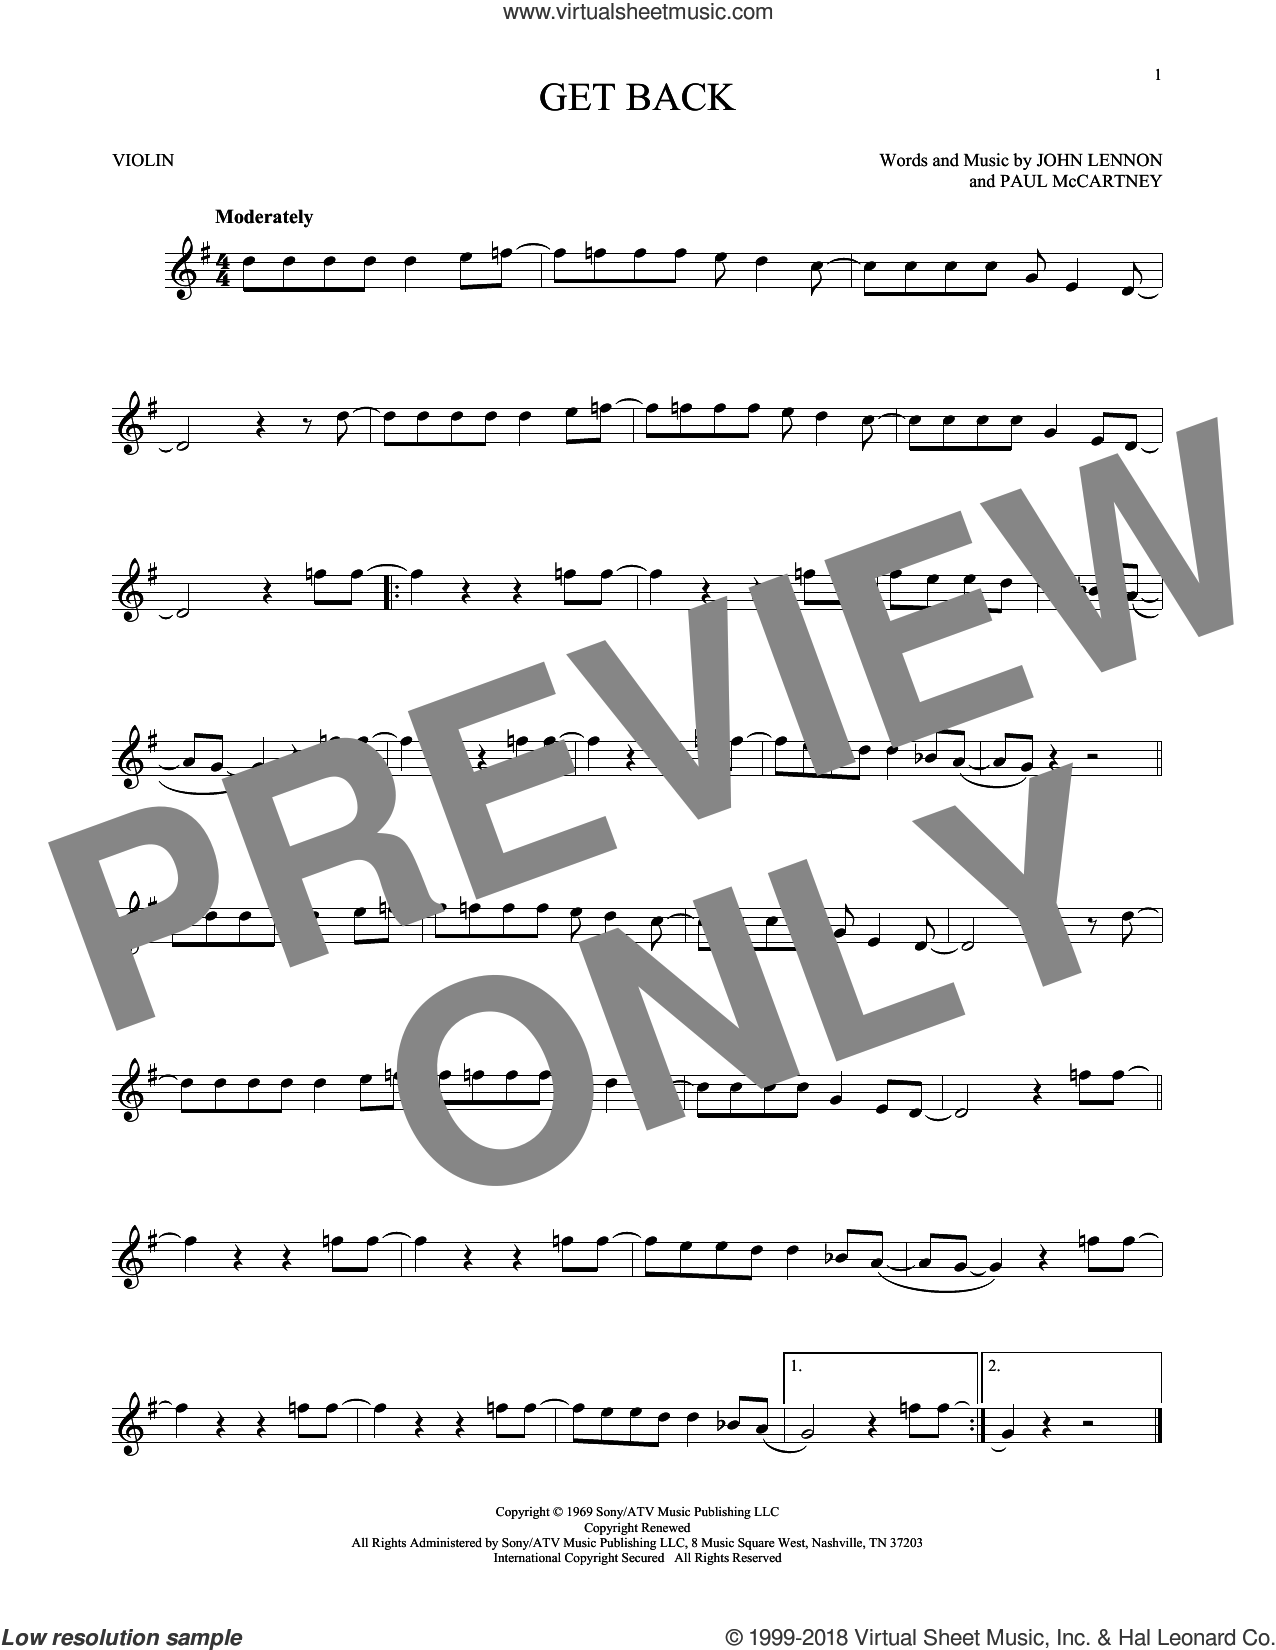 Get Back sheet music for violin solo by The Beatles, John Lennon and Paul McCartney, intermediate skill level